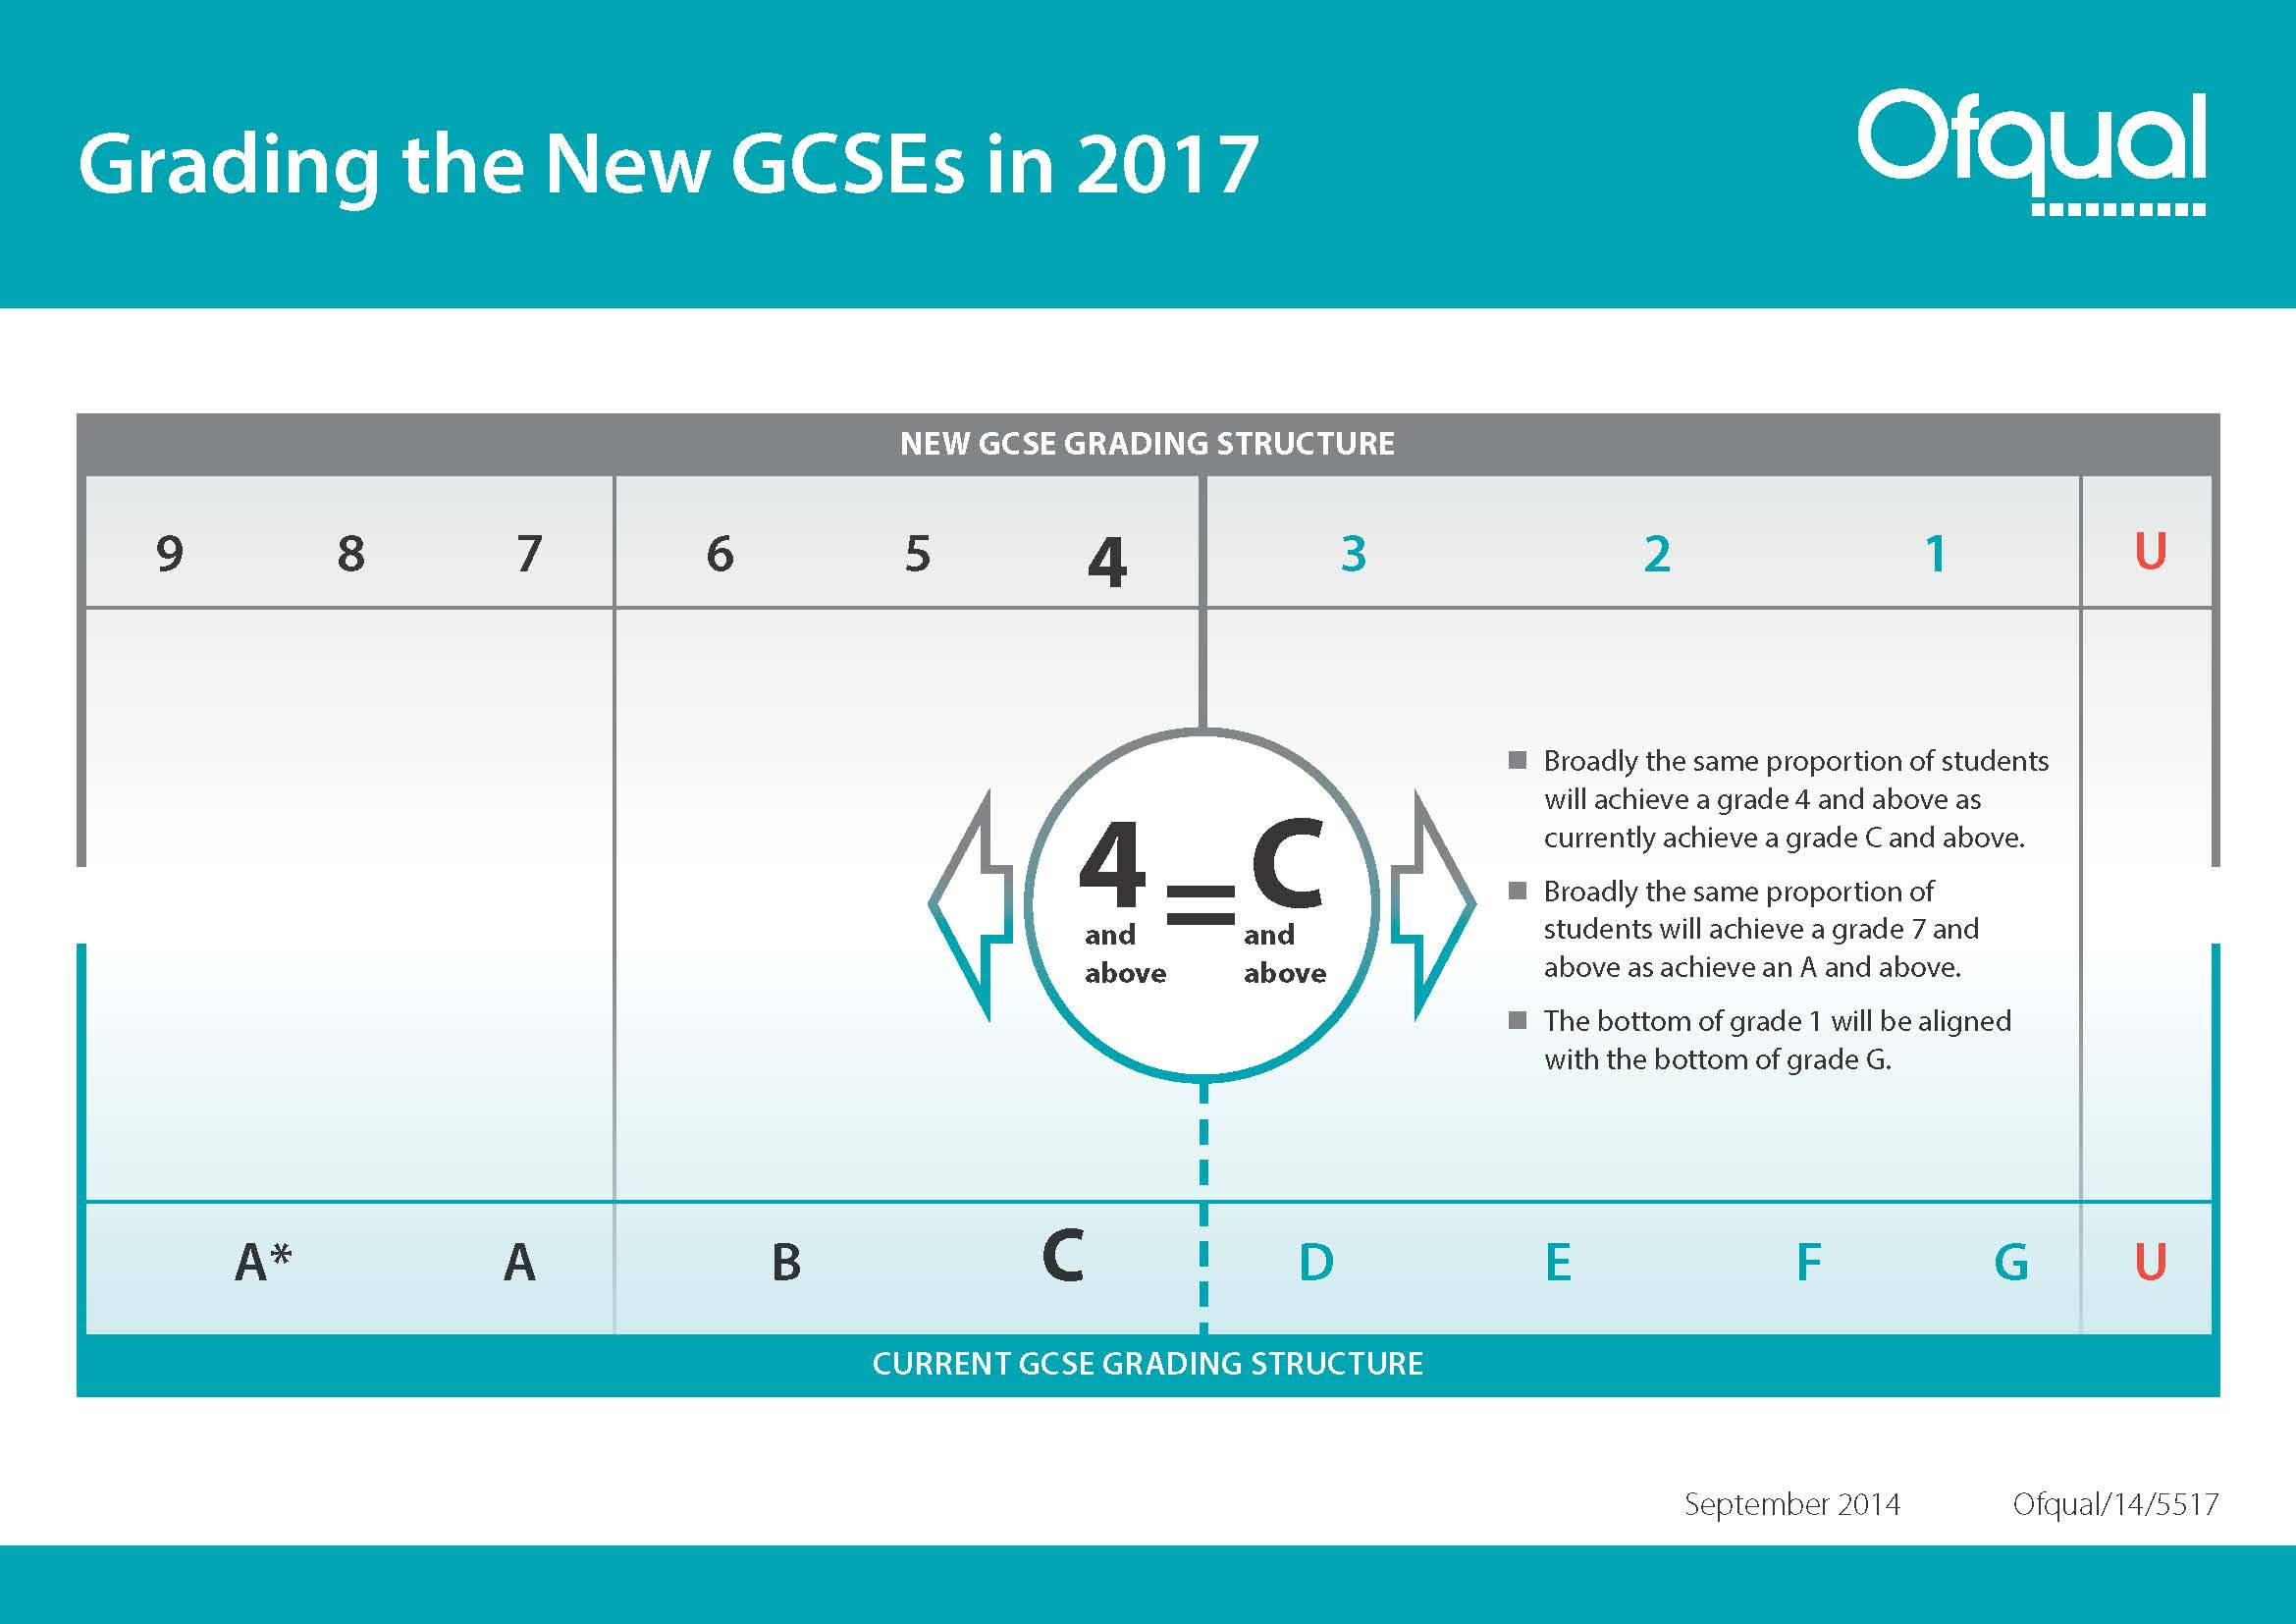 2014-09-12-grading-the-new-gcses-in